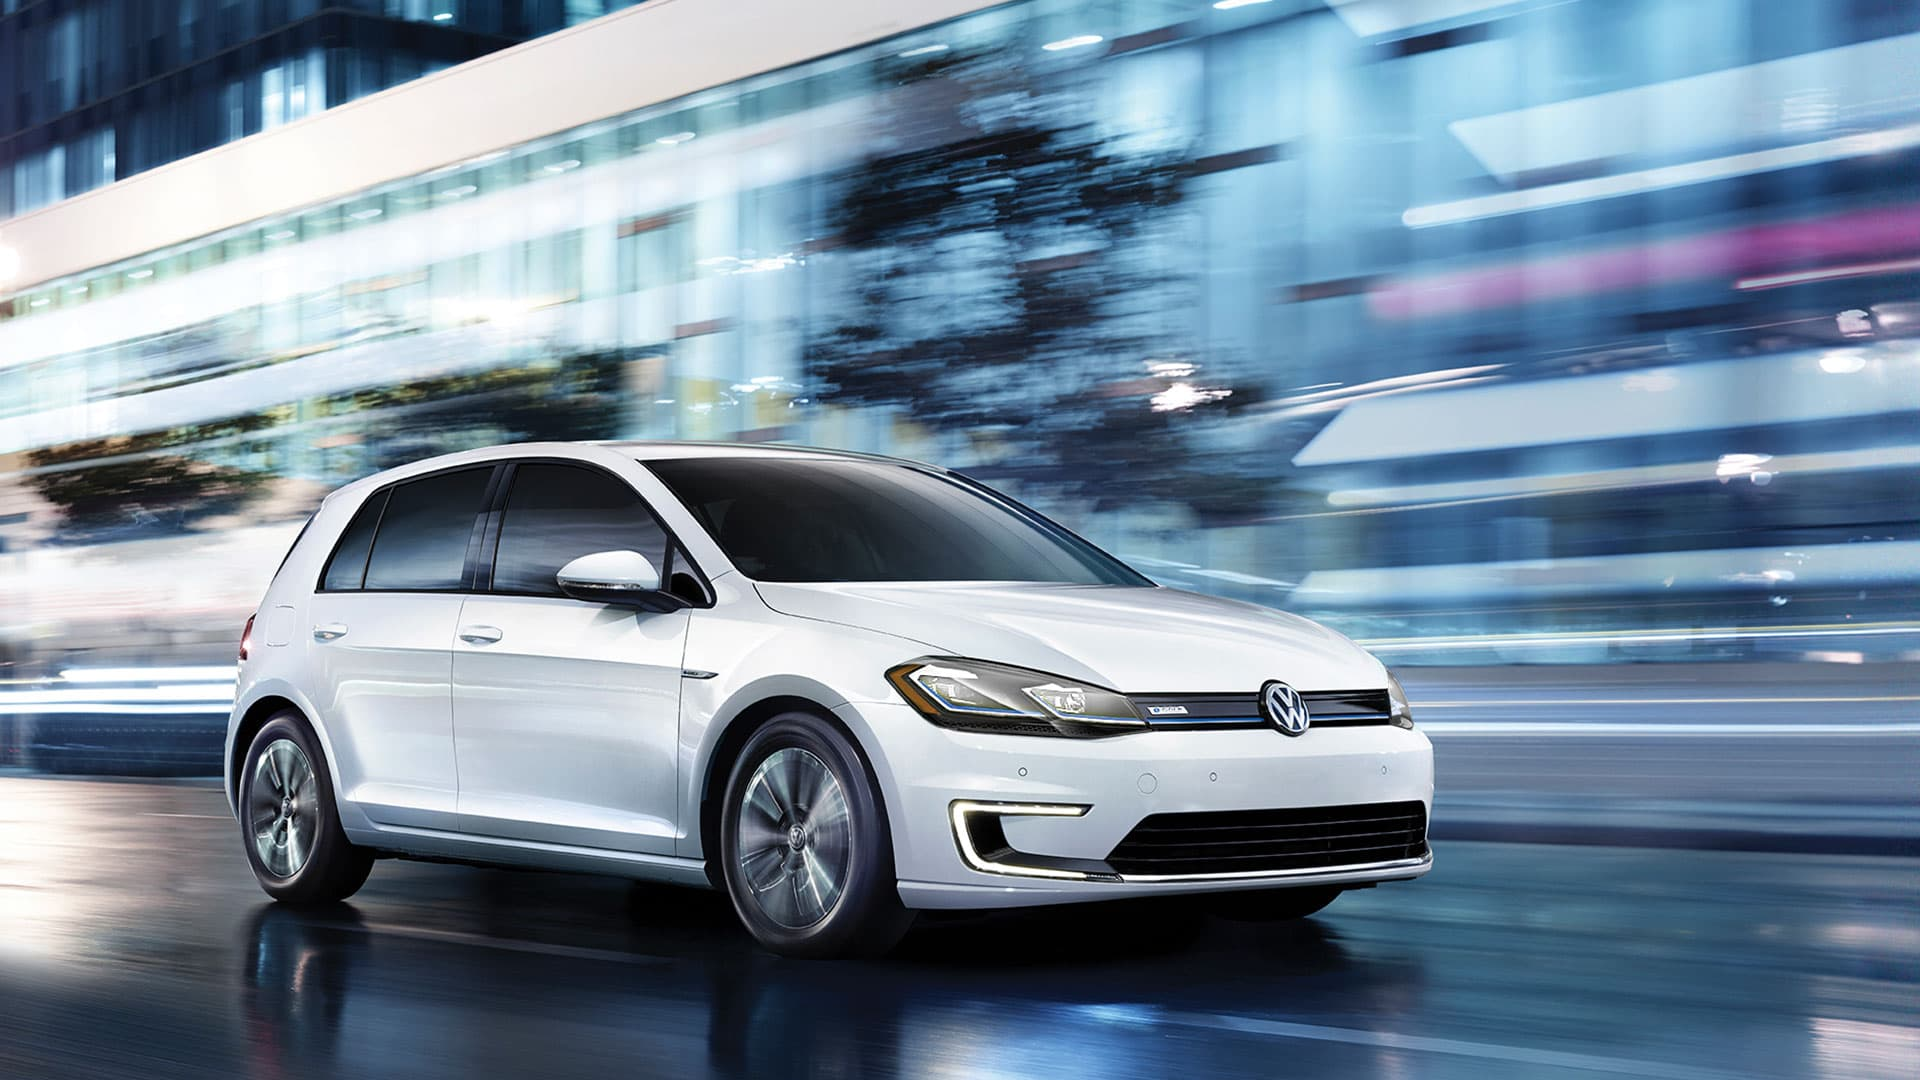 Volkswagen e-Golf Hero Image